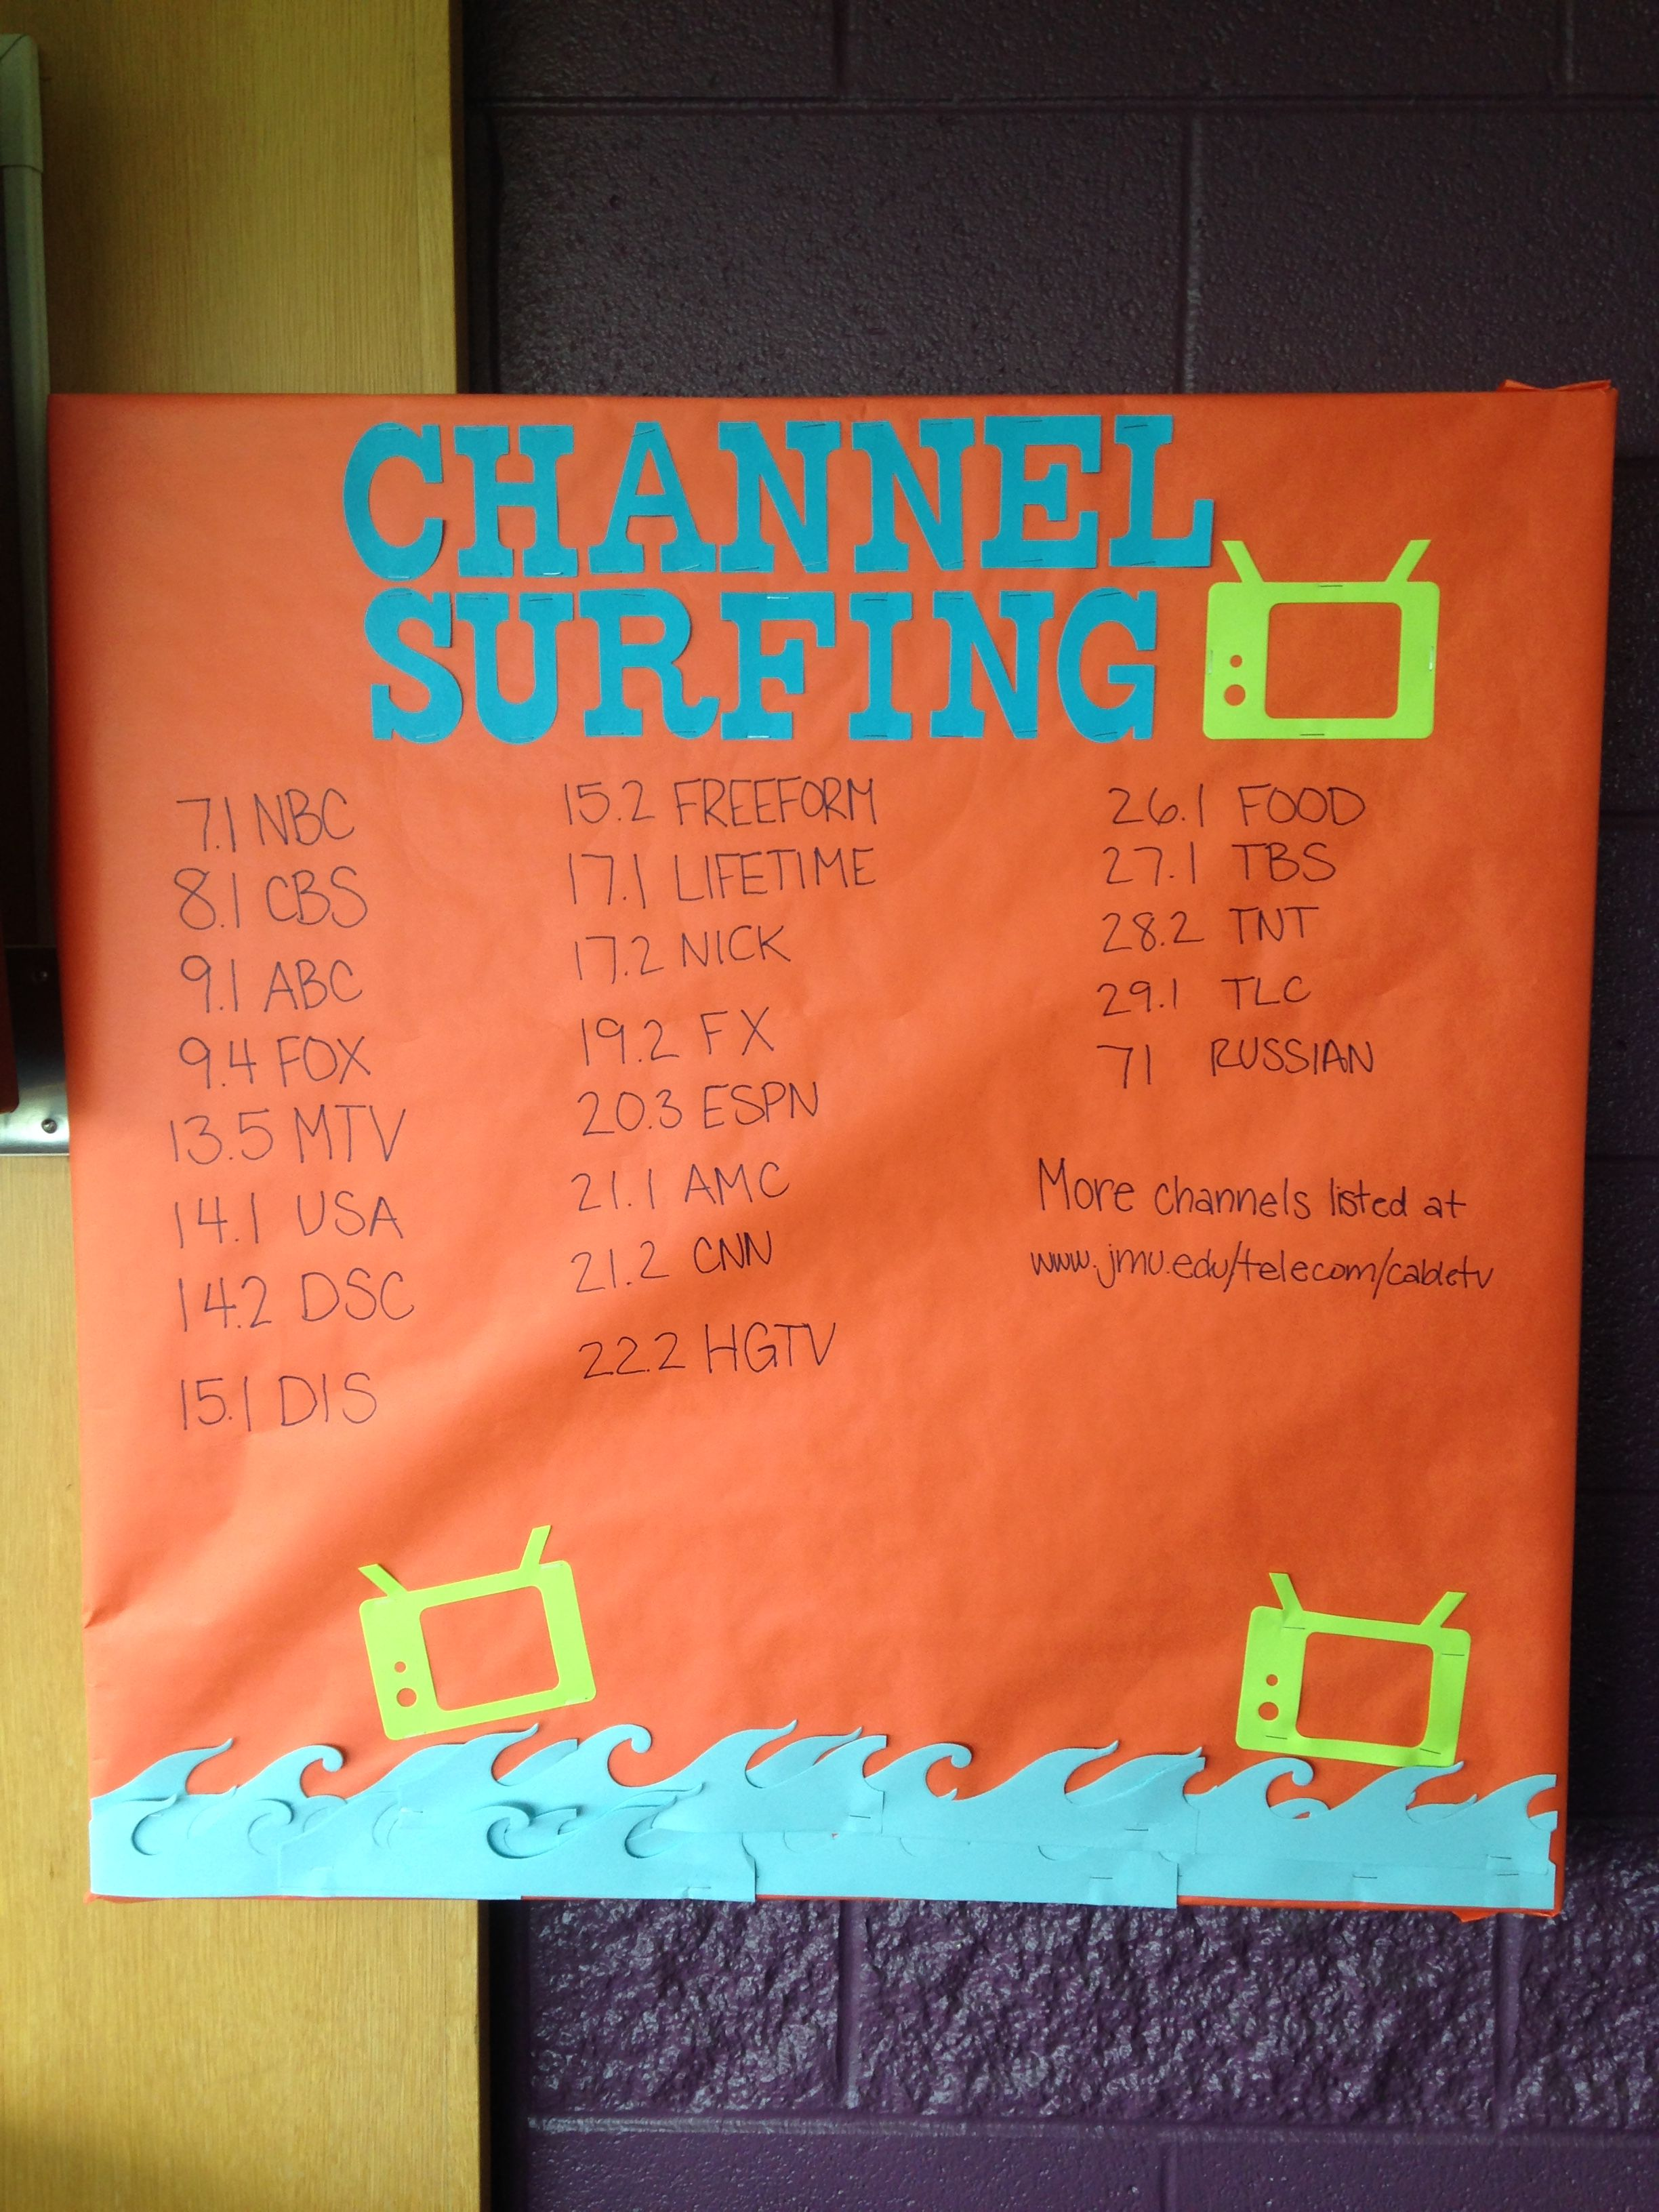 A kinda sloppy channel surfing board for the common room